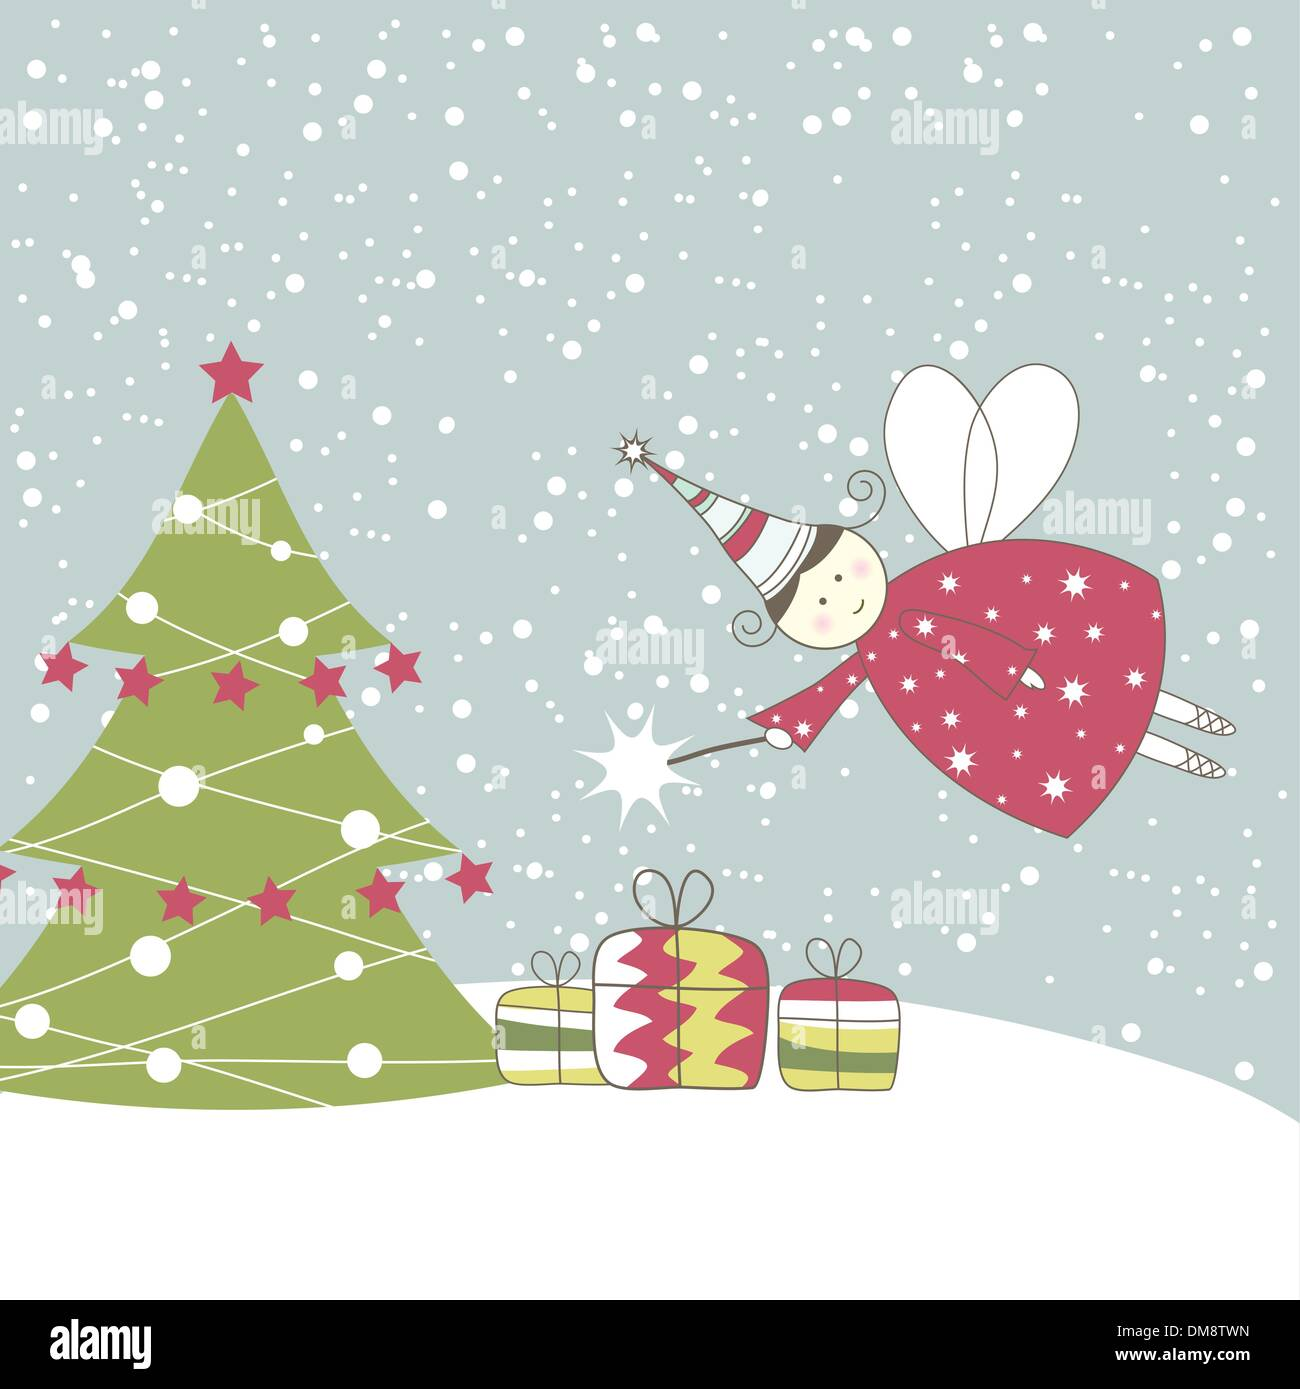 Illustration Christmas Tree Angel Stock Photos Illustration